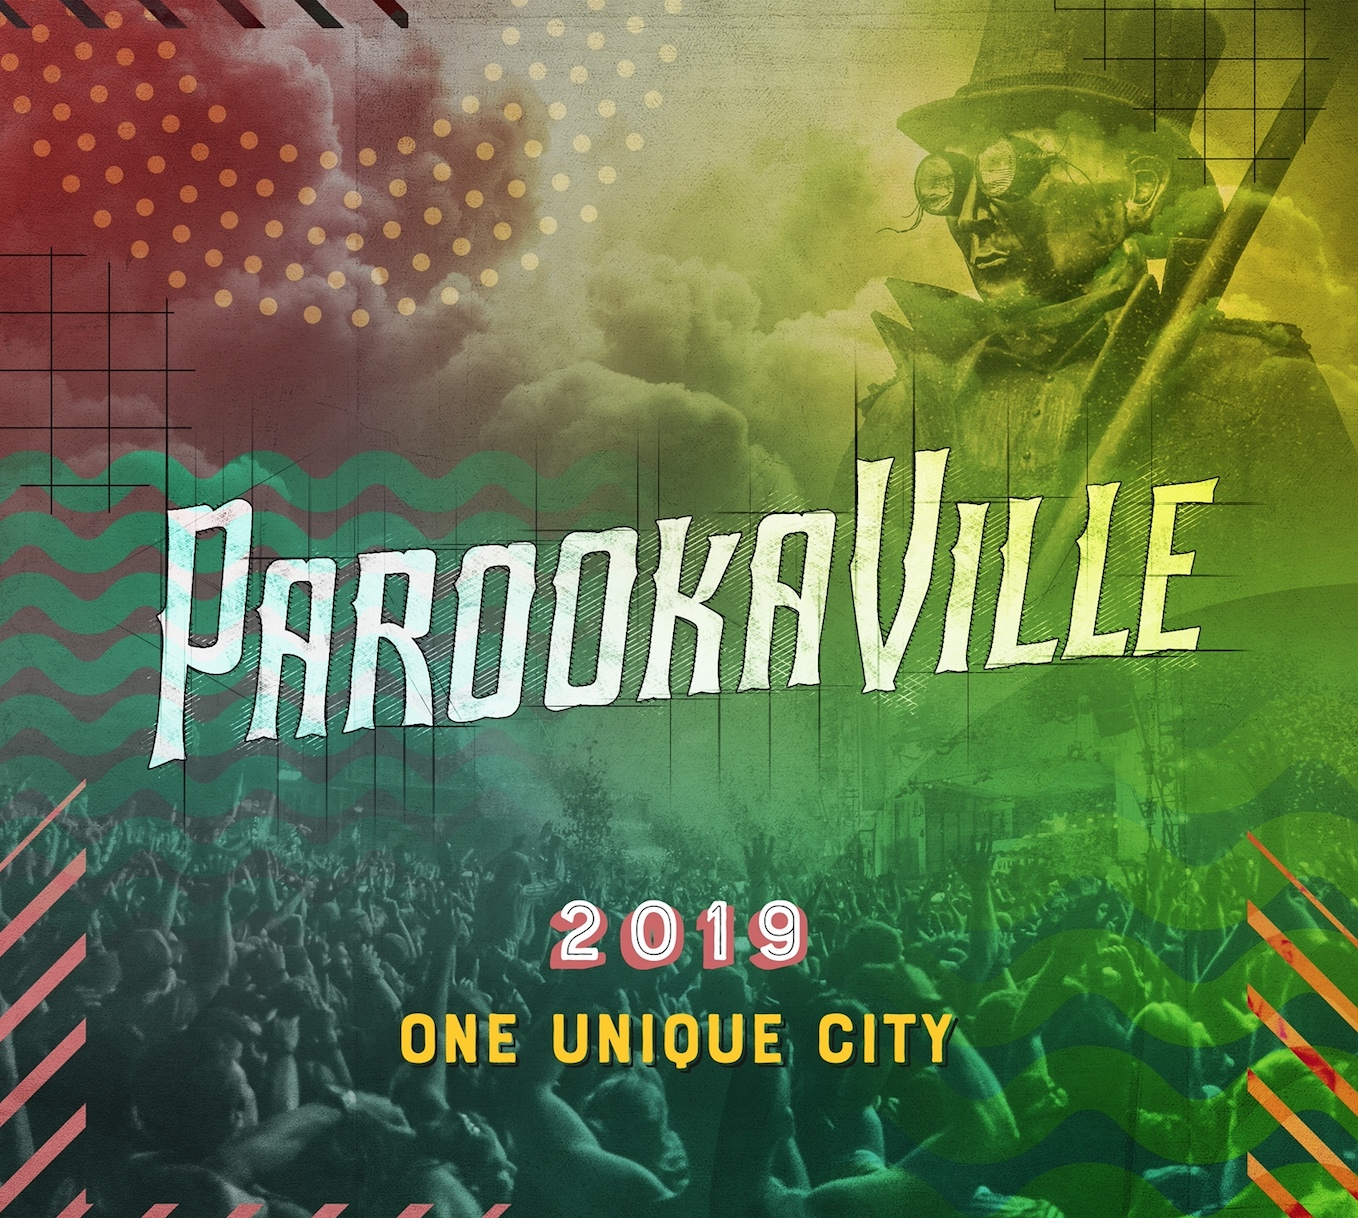 Parookaville 2019 (One Unique City)